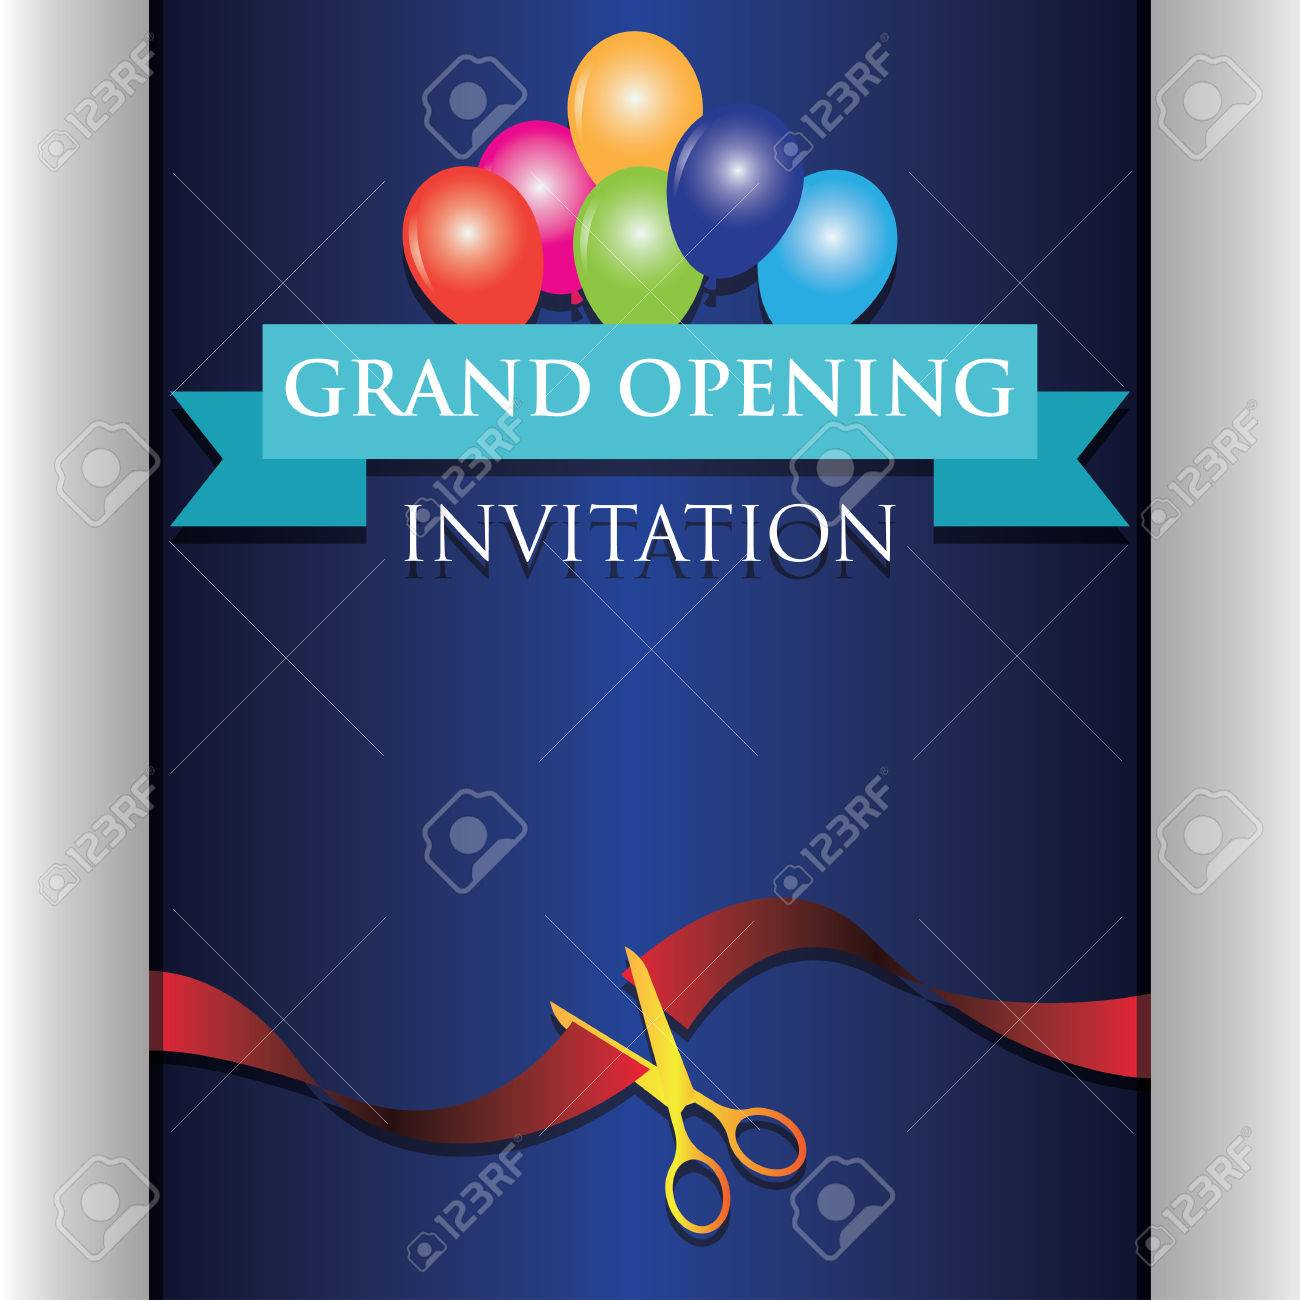 Grand opening invitation poster vector illustration royalty free grand opening invitation poster vector illustration stock vector 80709525 stopboris Image collections